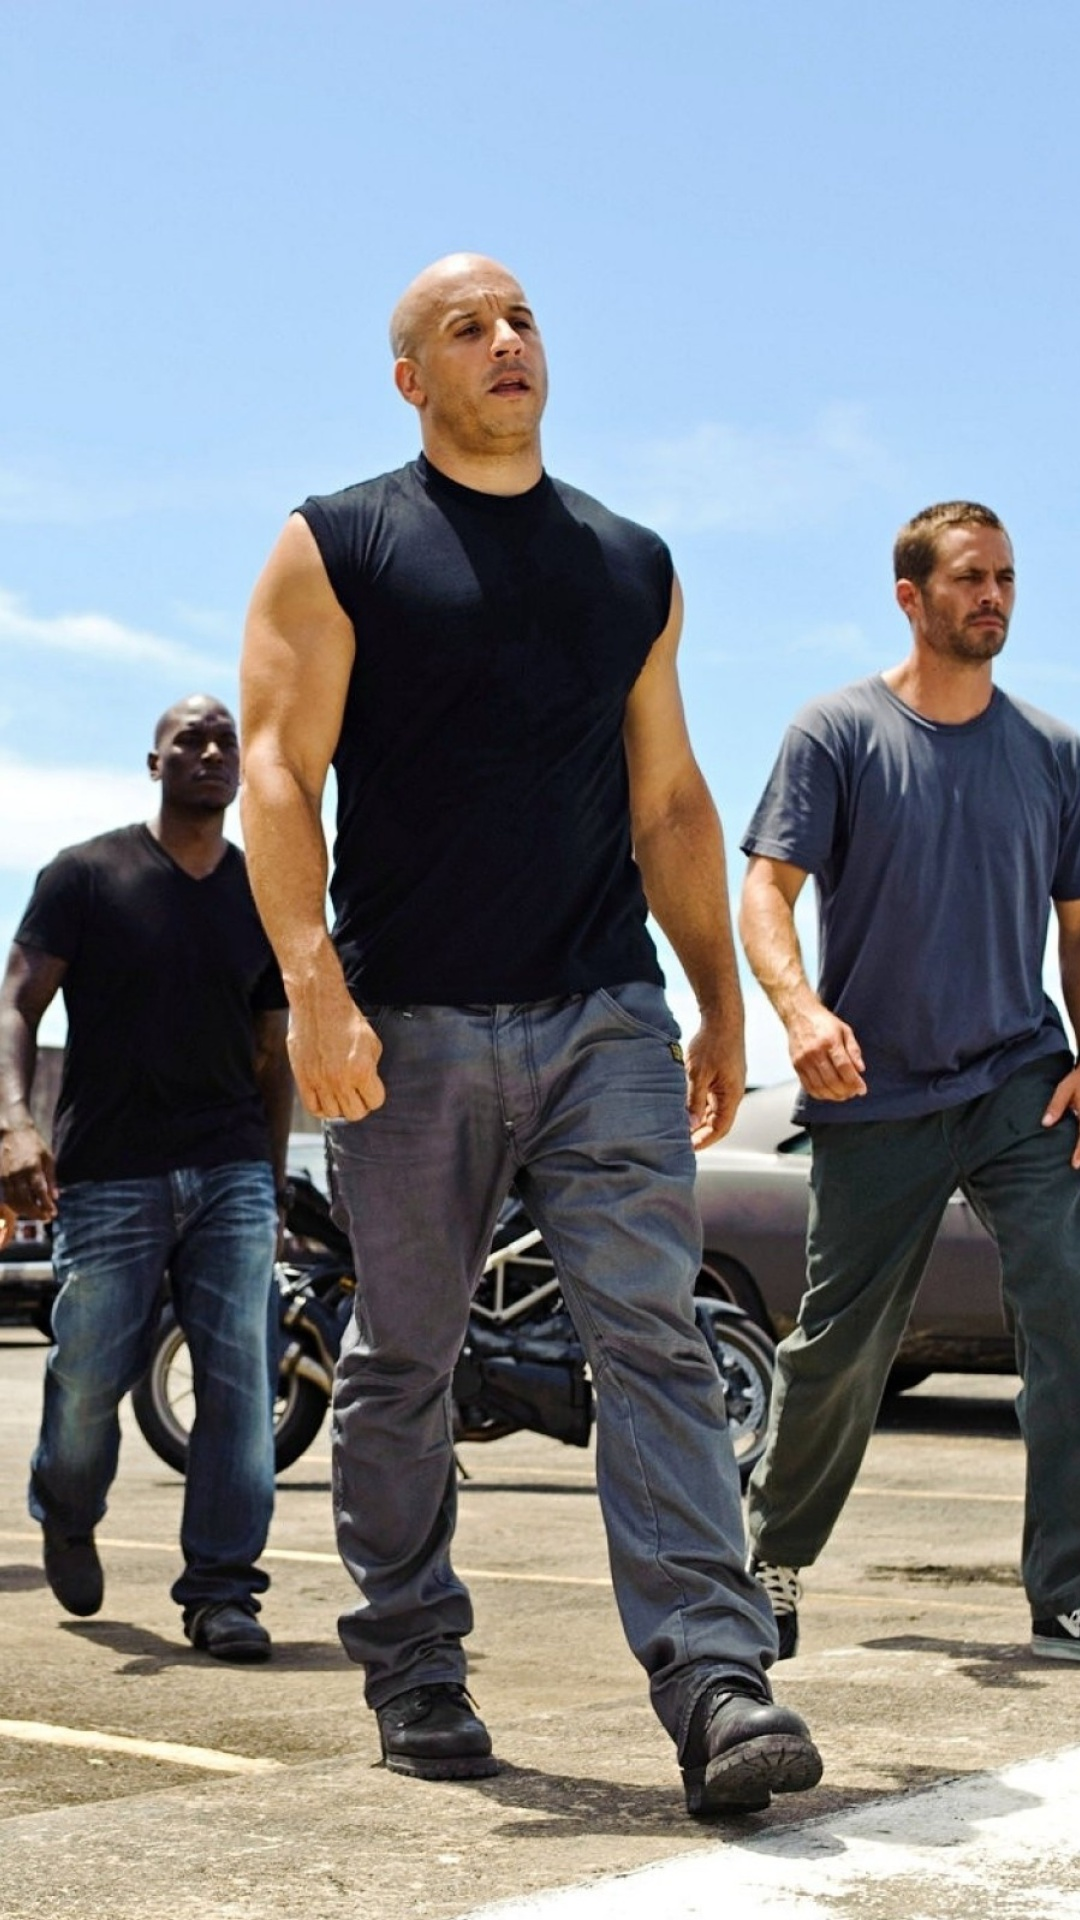 fast and furious 7 hd wallpaper for iphone 7 plus - Fast And Furious 7 Cars Iphone Wallpapers